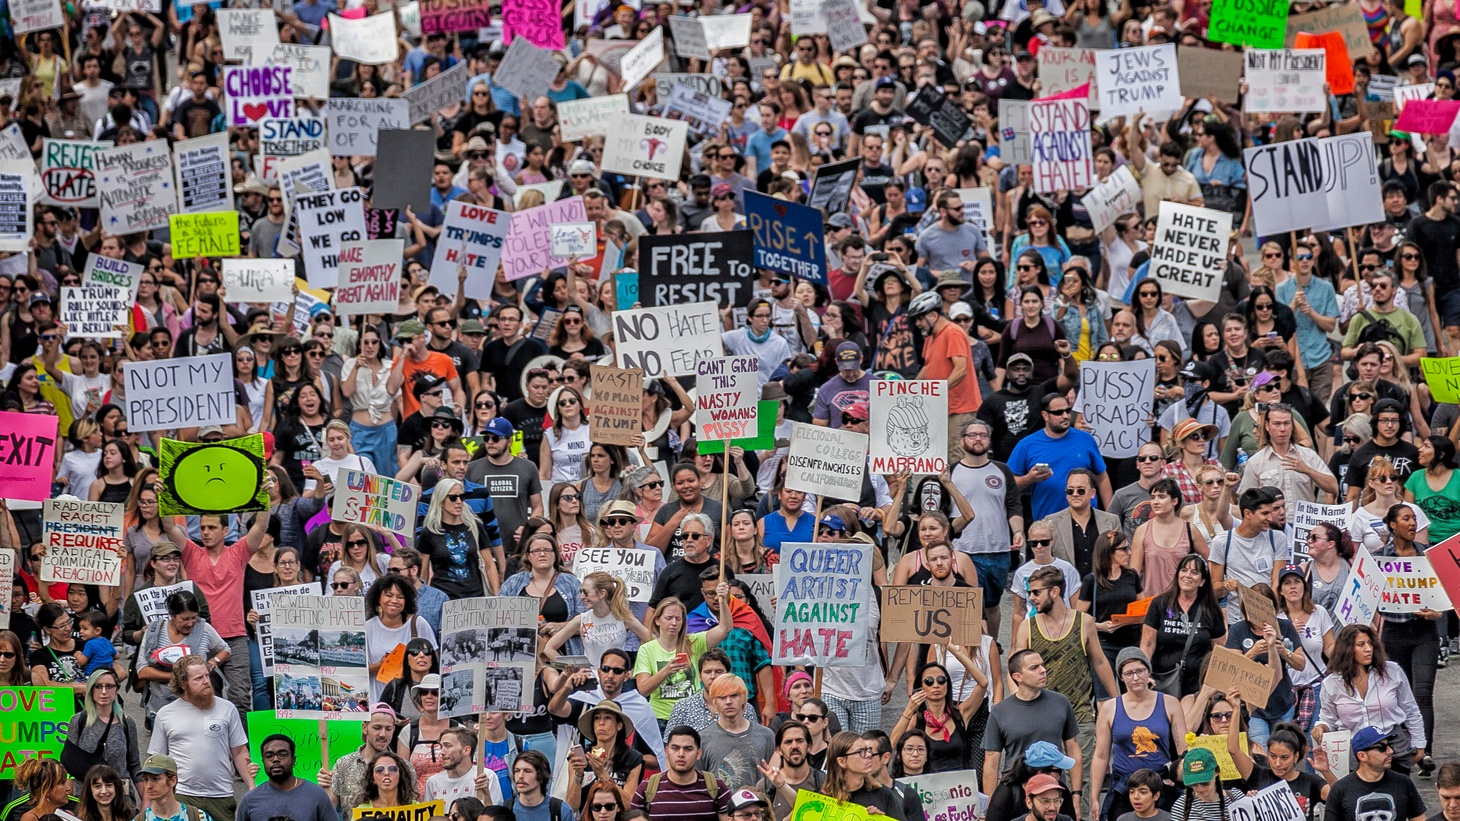 Thousands of people marched in downtown Los Angeles to protest the election of Donald Trump as president. Hillary Clinton won the state of California but lost the overall General Election. November 12, 2016, downtown LA, CA.